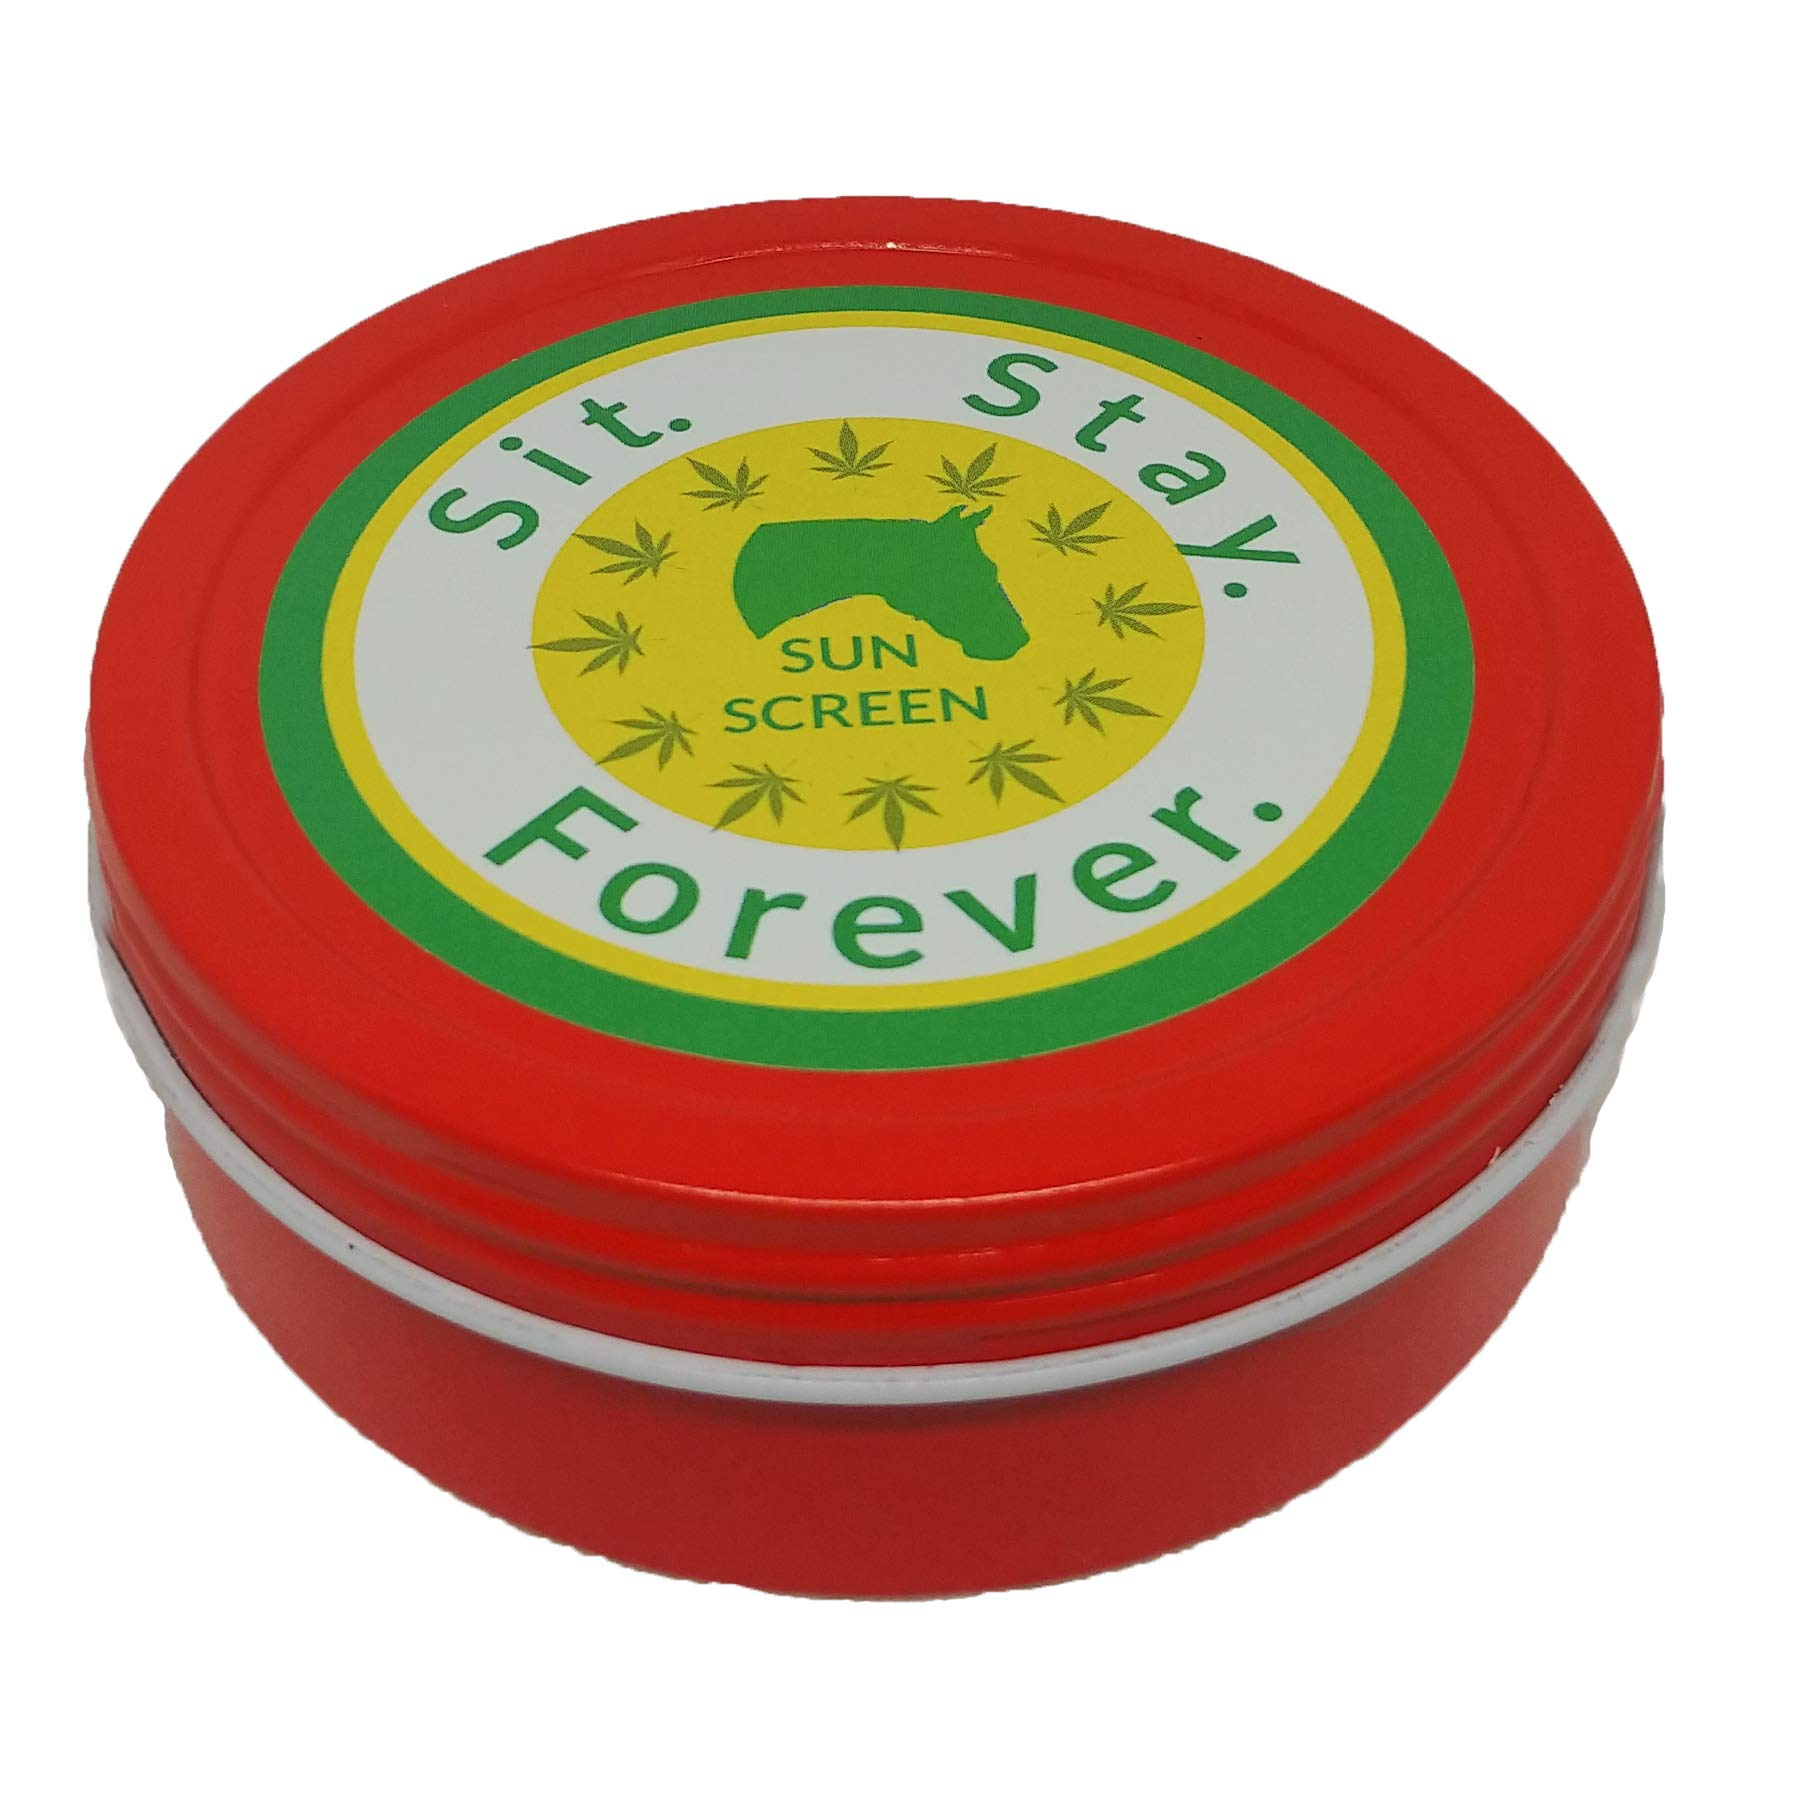 SIT. STAY. FOREVER. SAFETY FIRST PET PRODUCTS, Sit. Stay. Forever. Organic Horse Sunscreen & Moisturizer, All Natural, 4 oz tin, Made in USA by SIT. STAY. FOREVER. SAFETY FIRST PET PRODUCTS